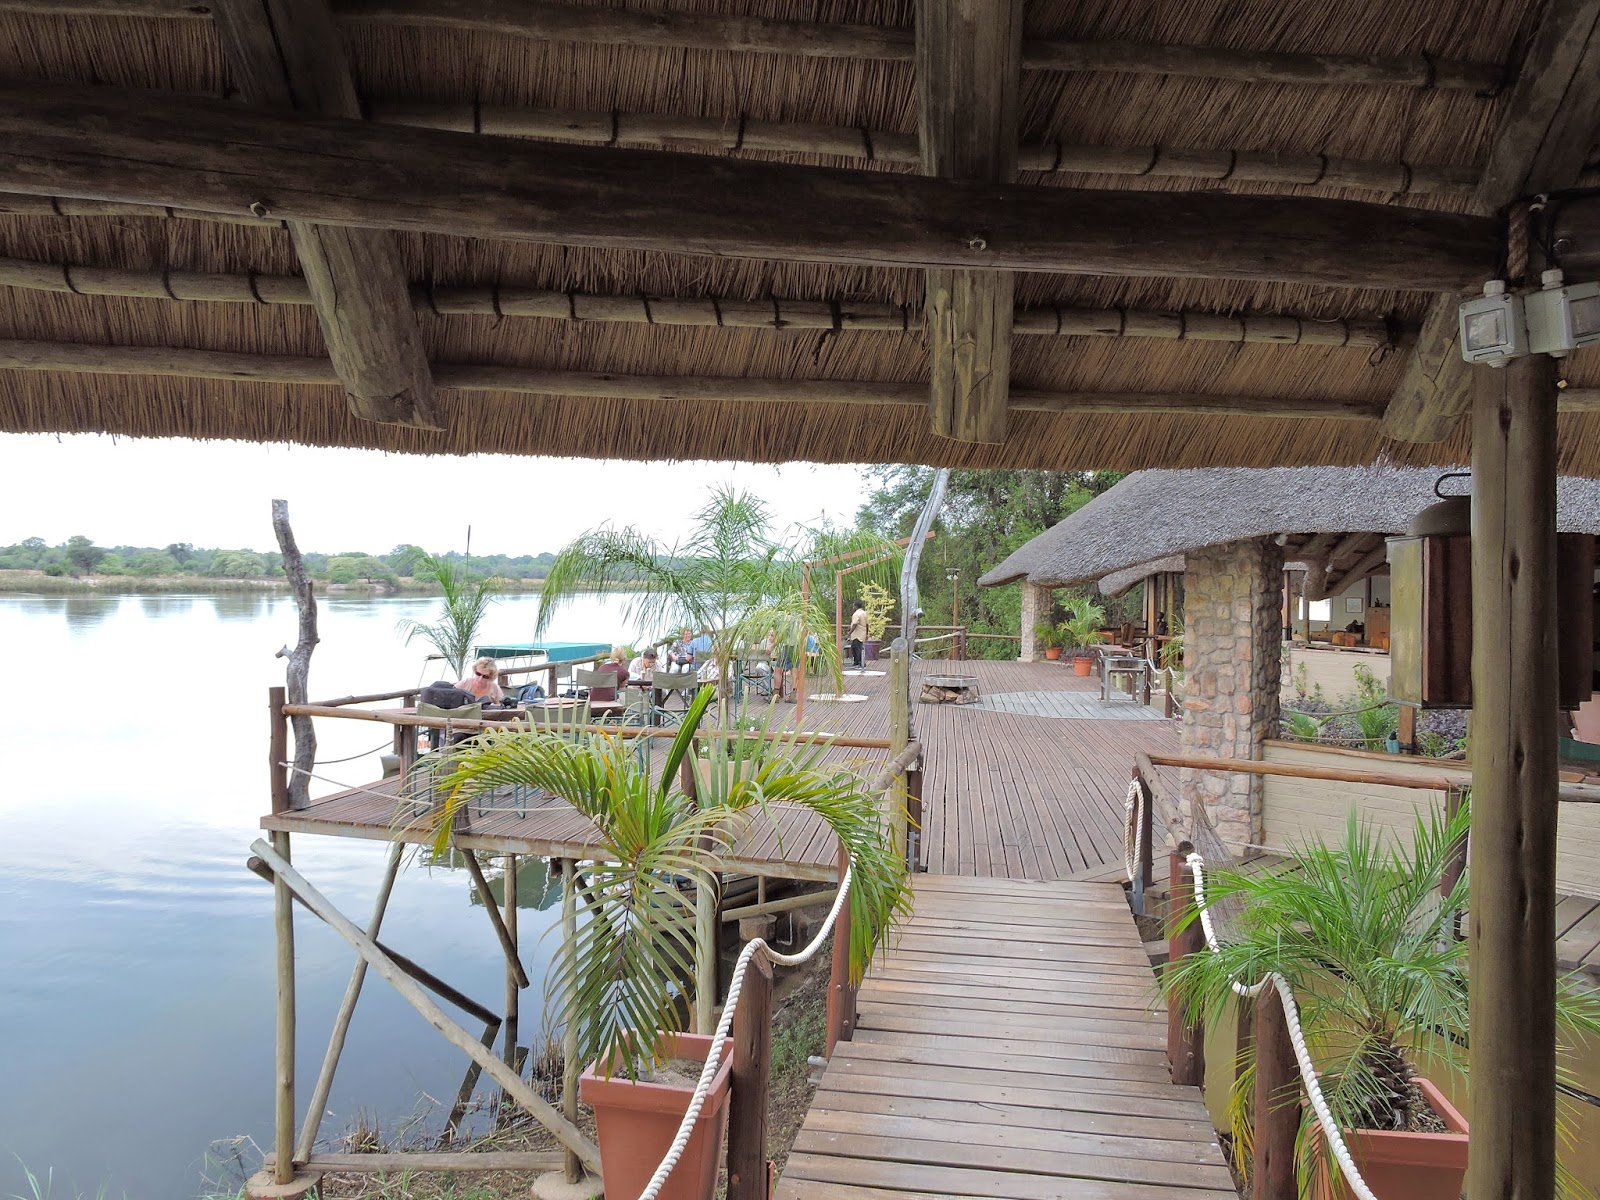 A wooden deck with the Okavango River visible on the photograph.